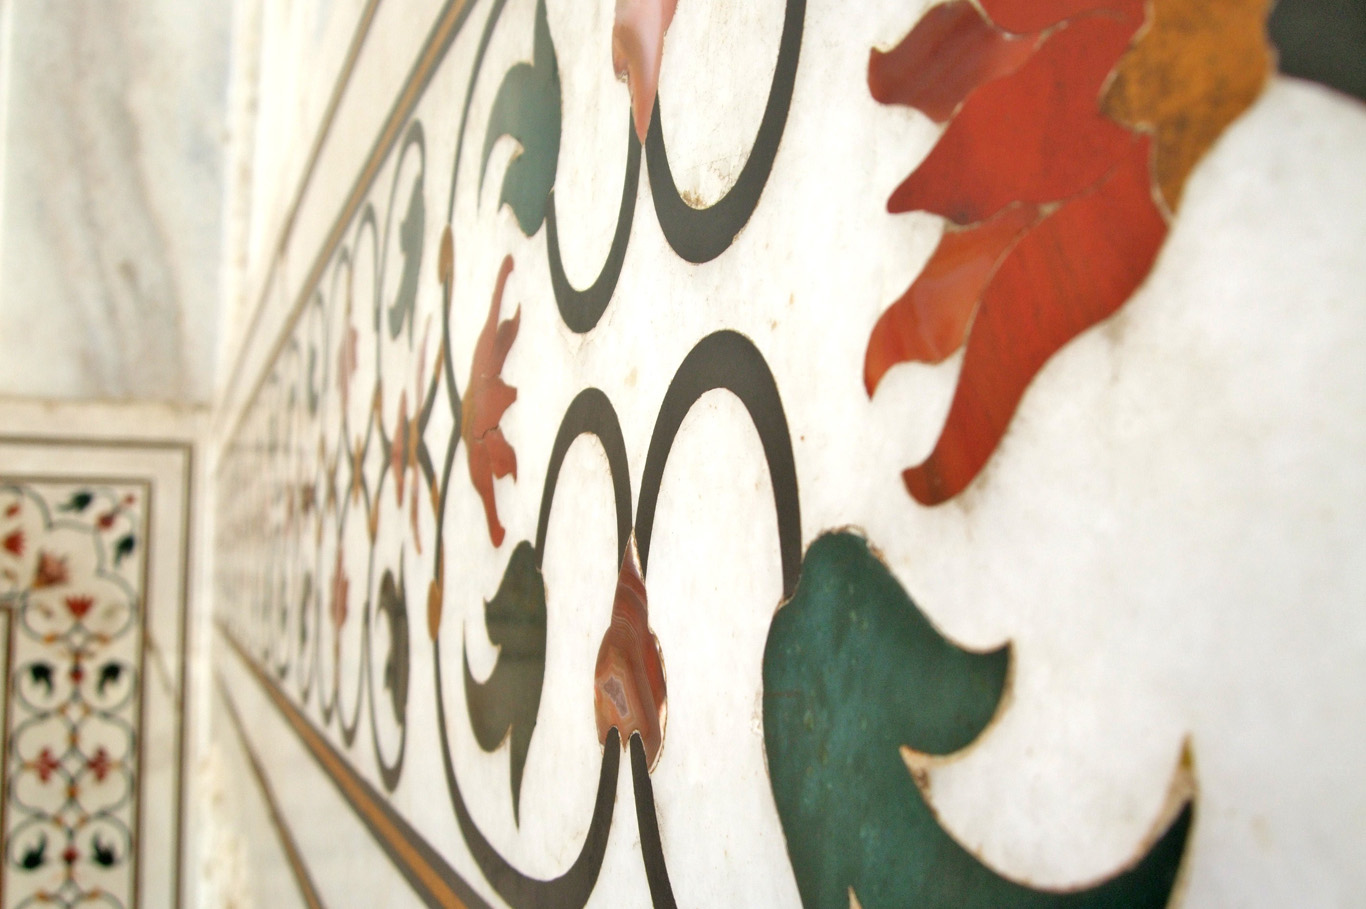 Taj Mahal - The wall decorated with colorful gems